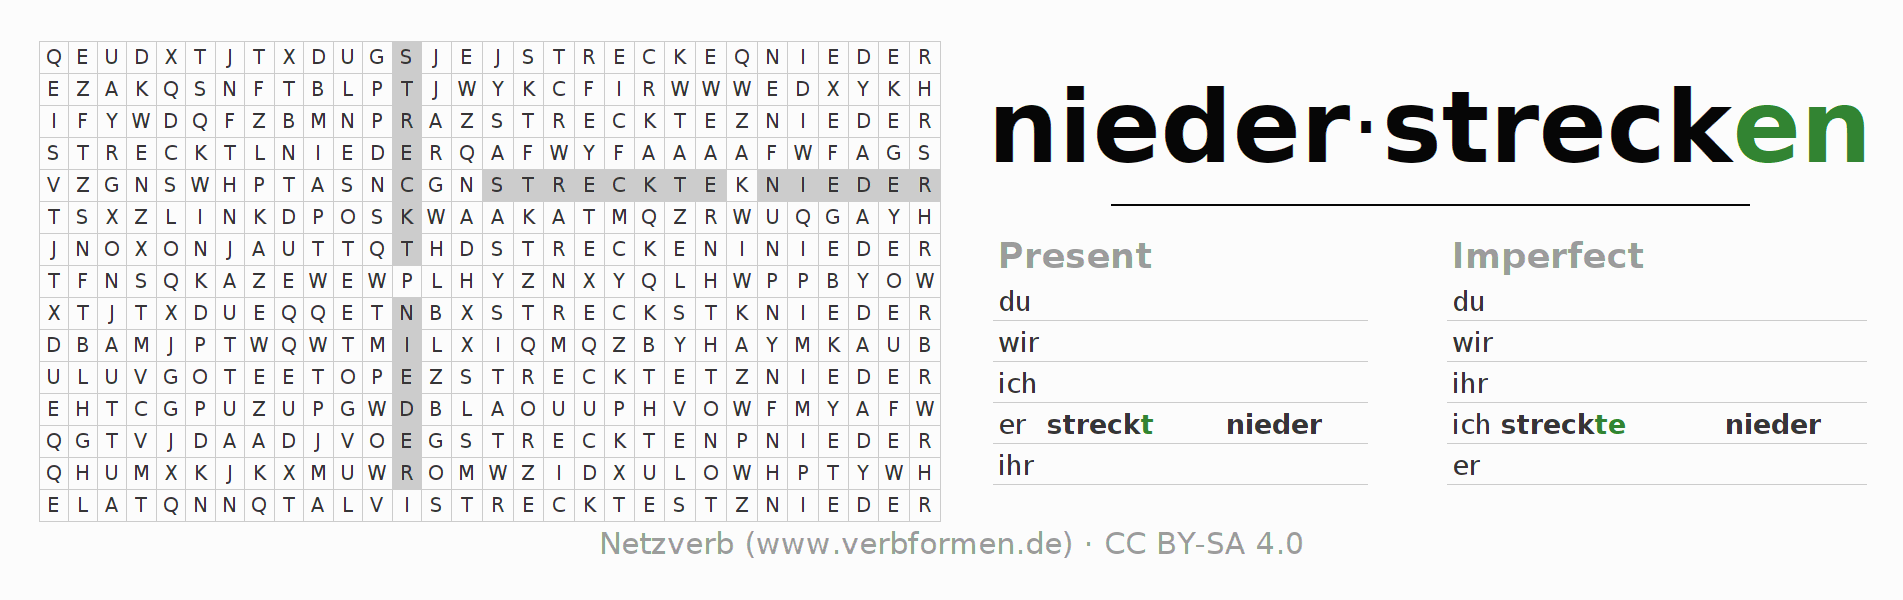 Word search puzzle for the conjugation of the verb niederstrecken